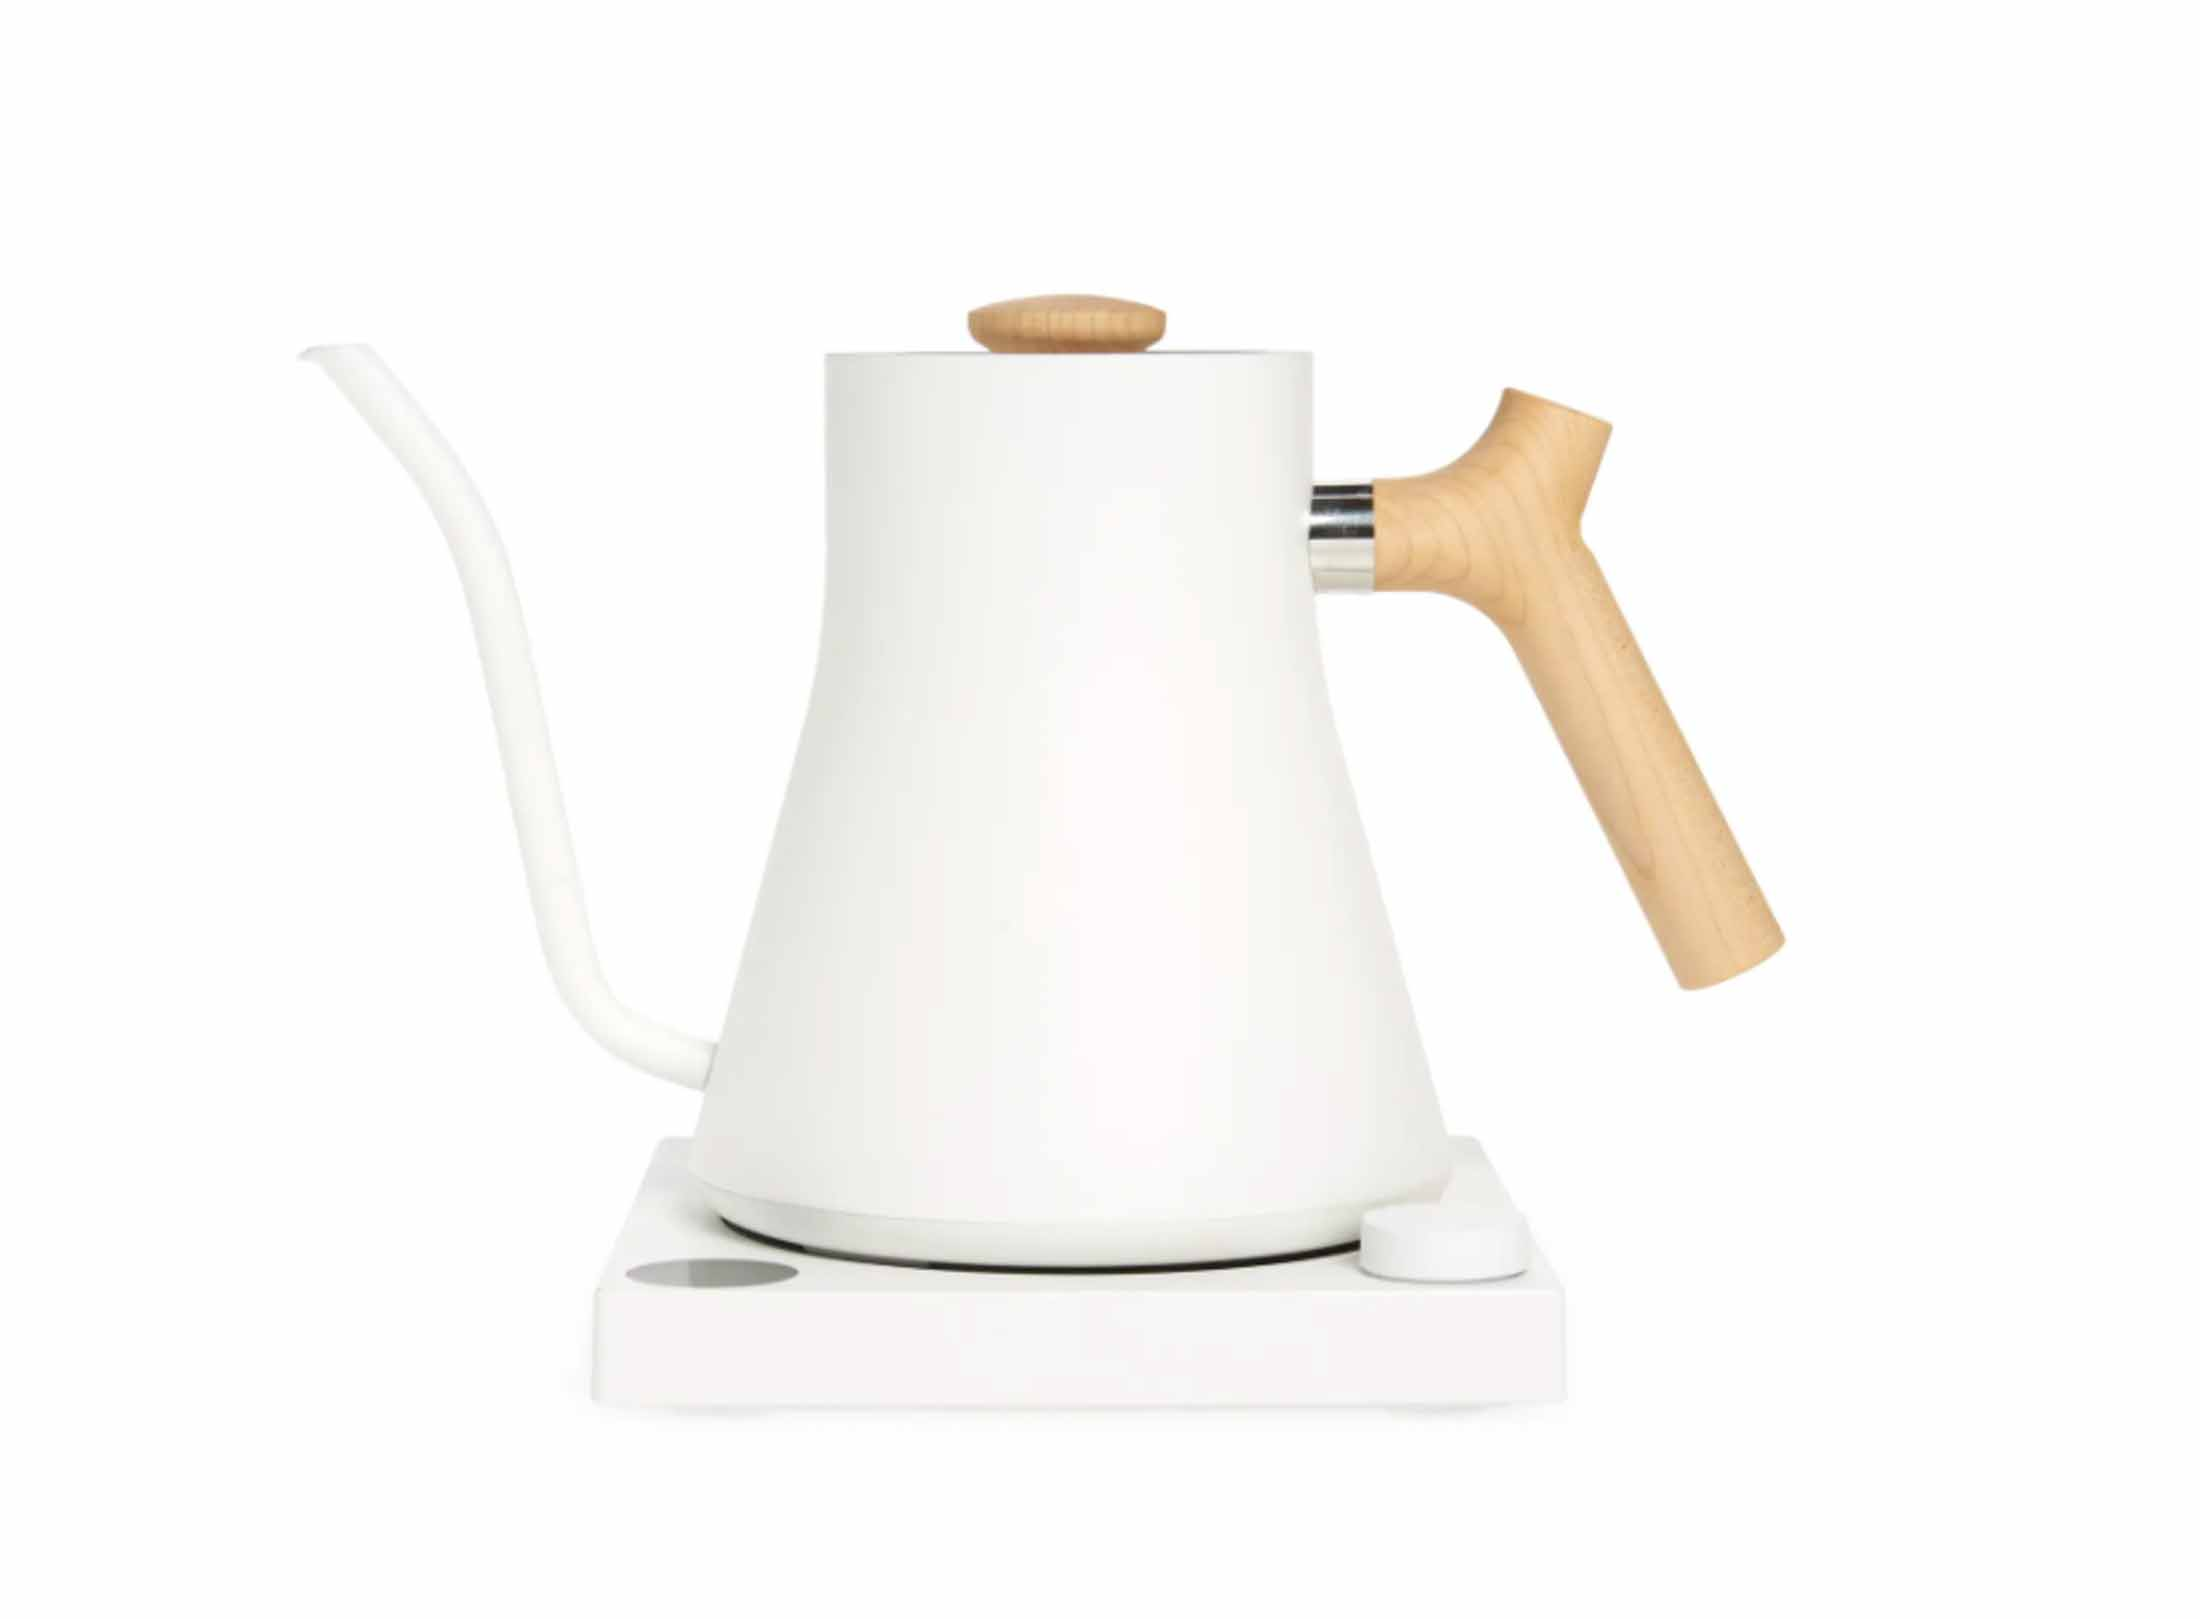 It's just so pretty and our current electric kettle is just a workhorse style that isn't lovely like this!